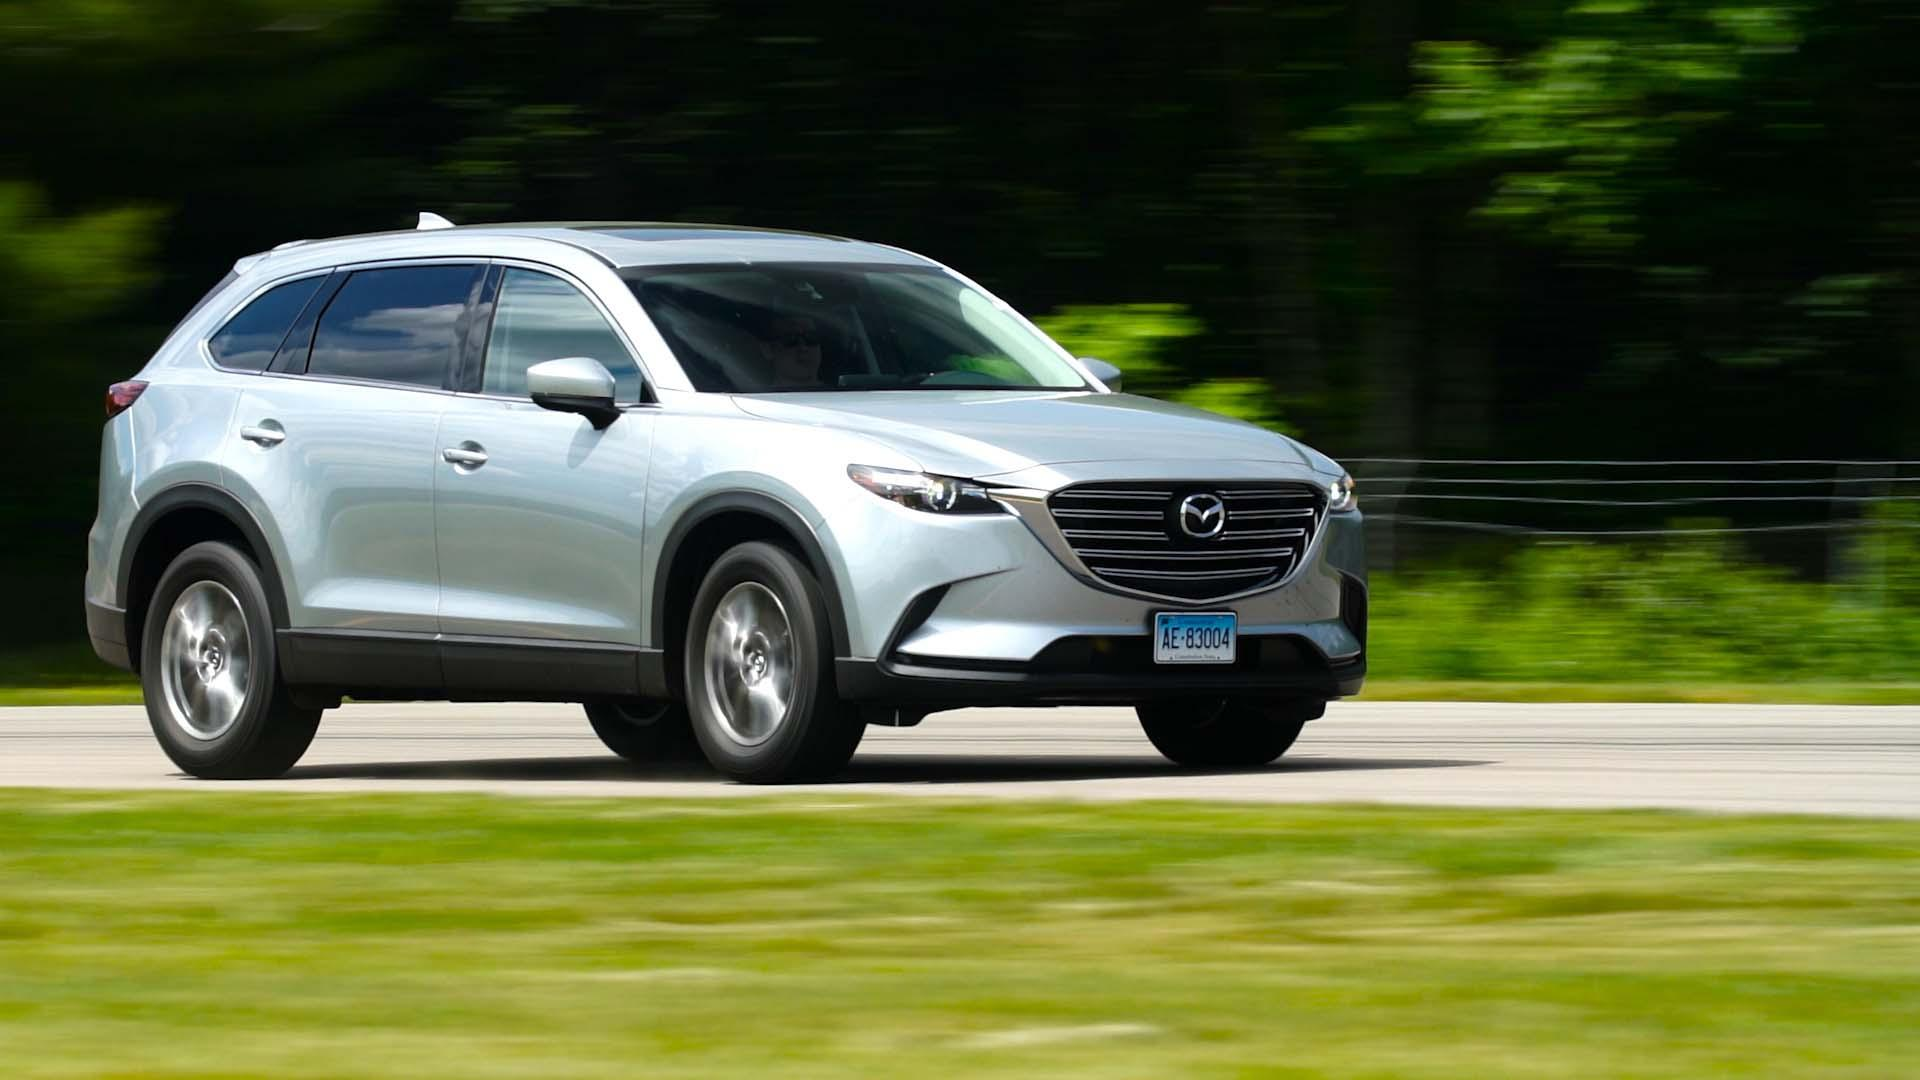 2016 mazda cx 9 review consumer reports. Black Bedroom Furniture Sets. Home Design Ideas